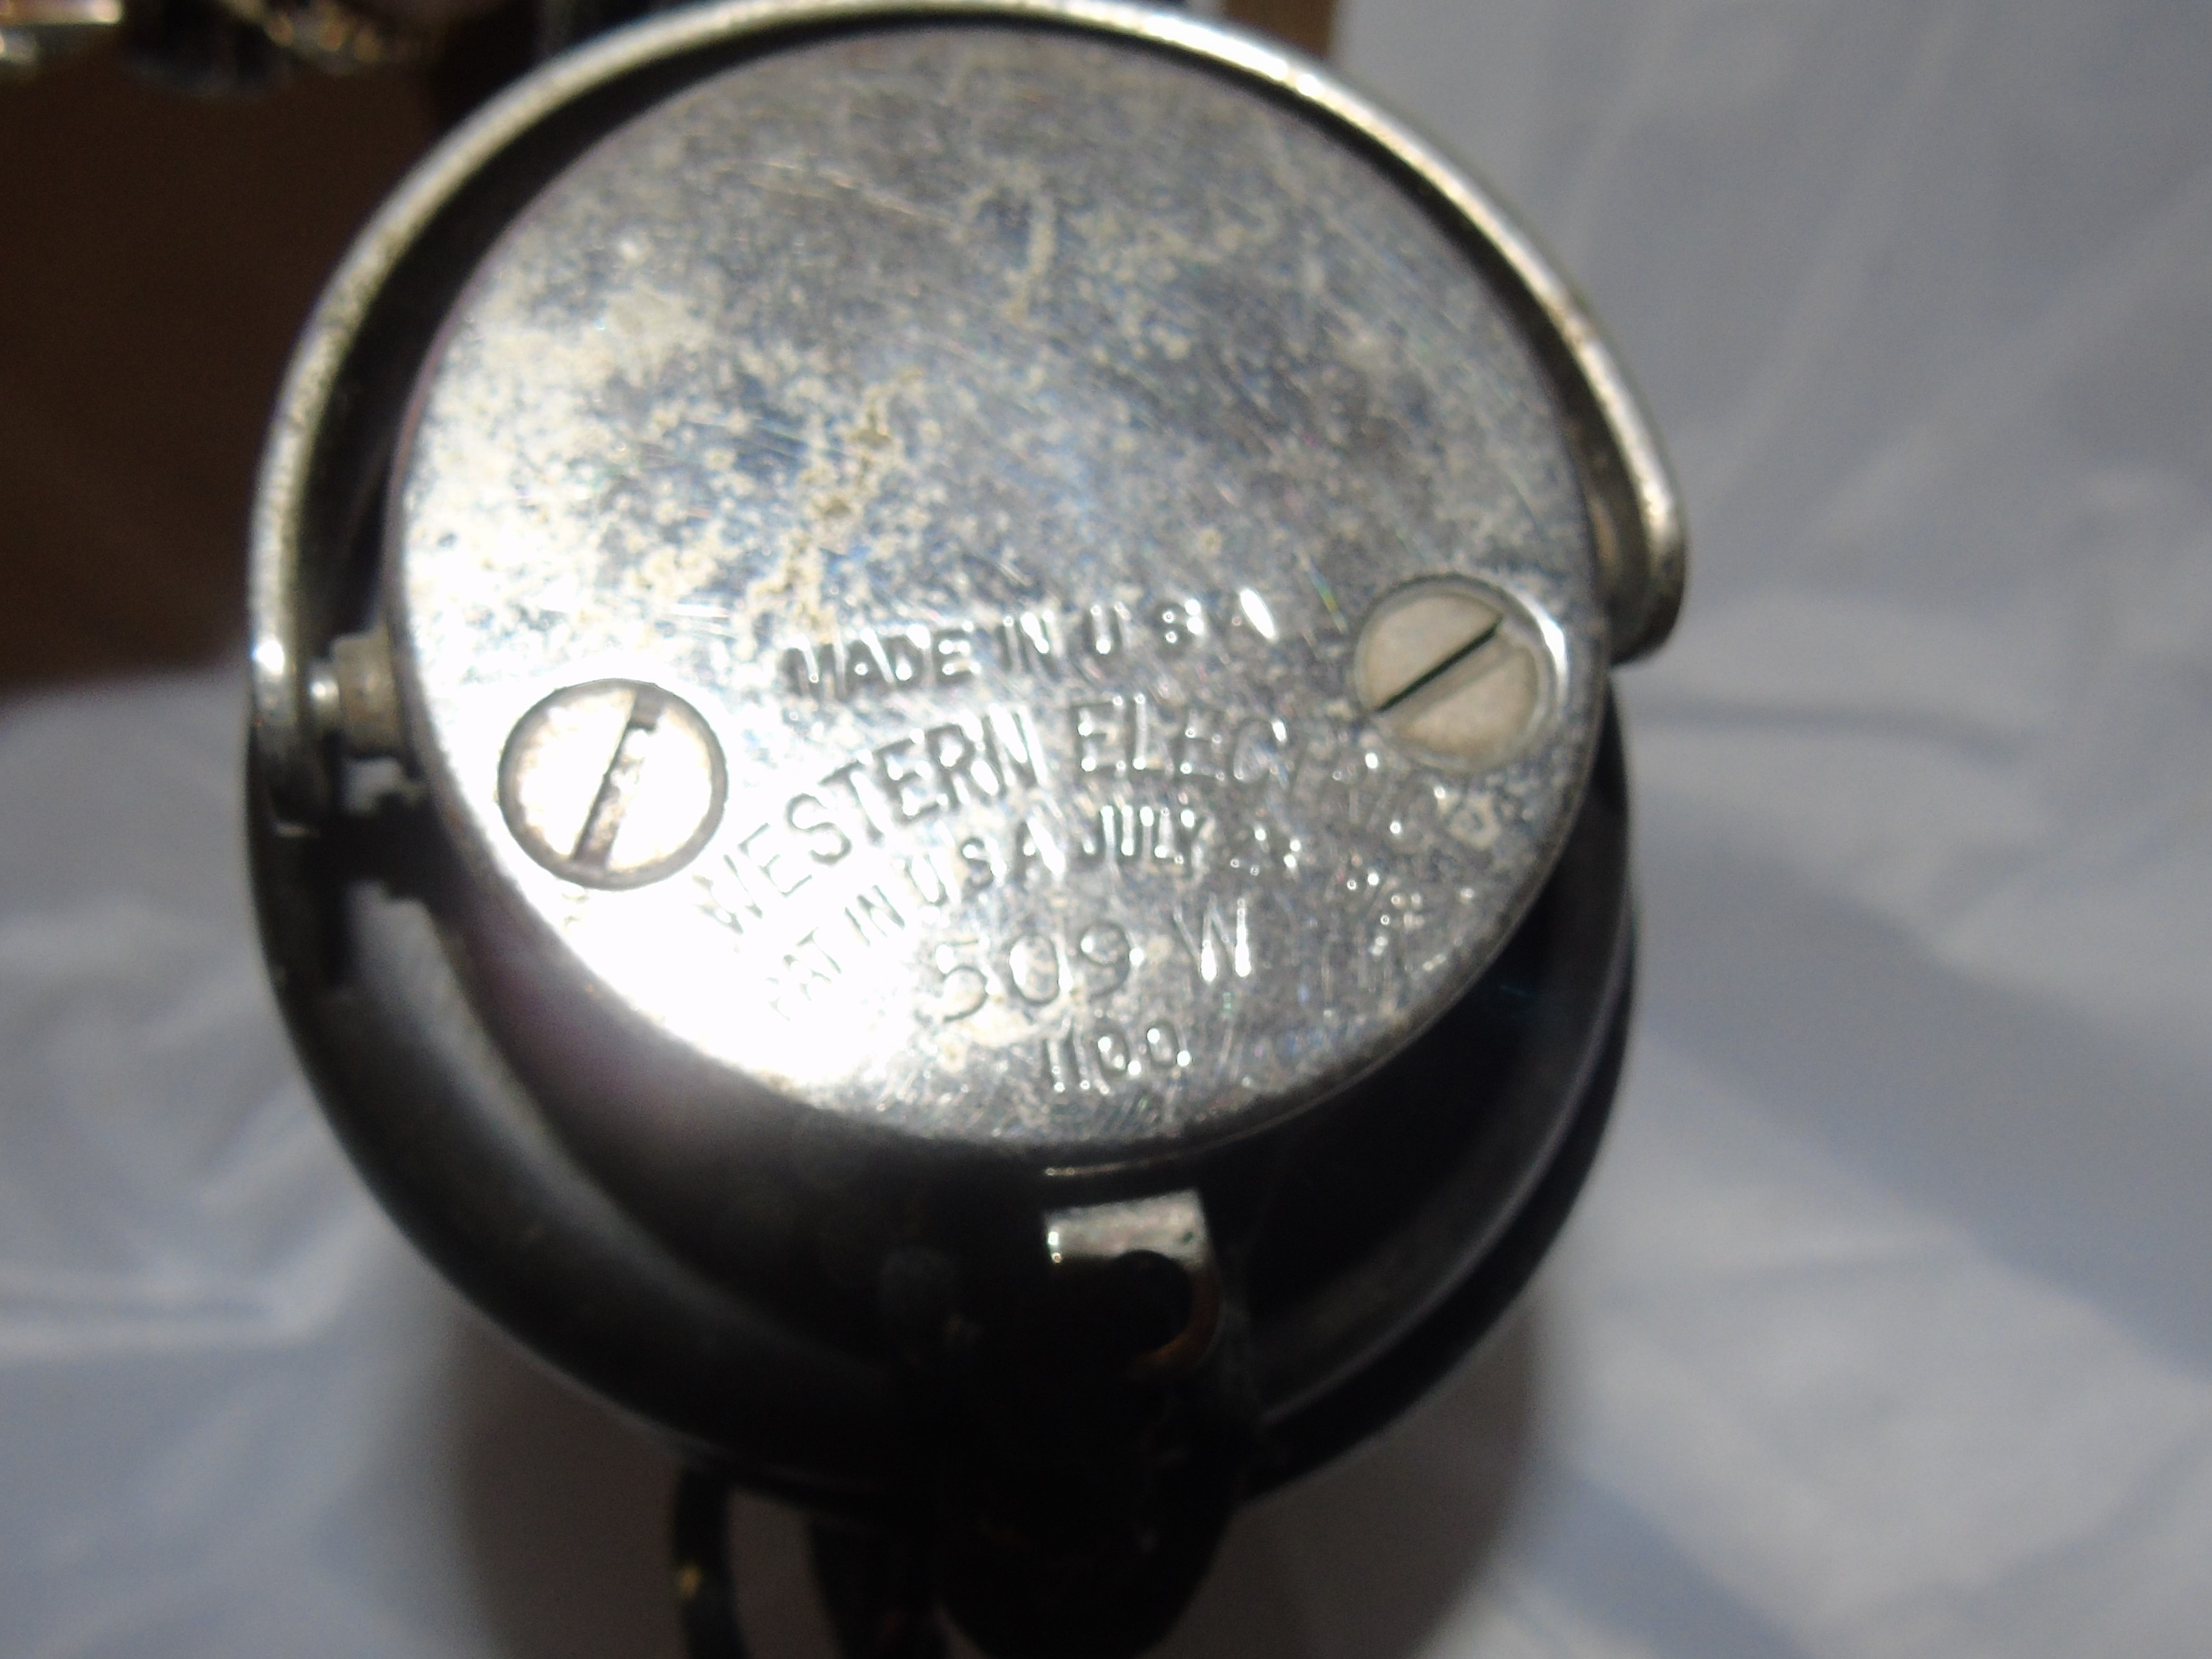 Lot 45 - US ARMY SIGNAL CORPS WESTERN ELECTRIC RADIO RECIEVER & TRANSMITTER CIRCA 1920s EST [£120- £180]